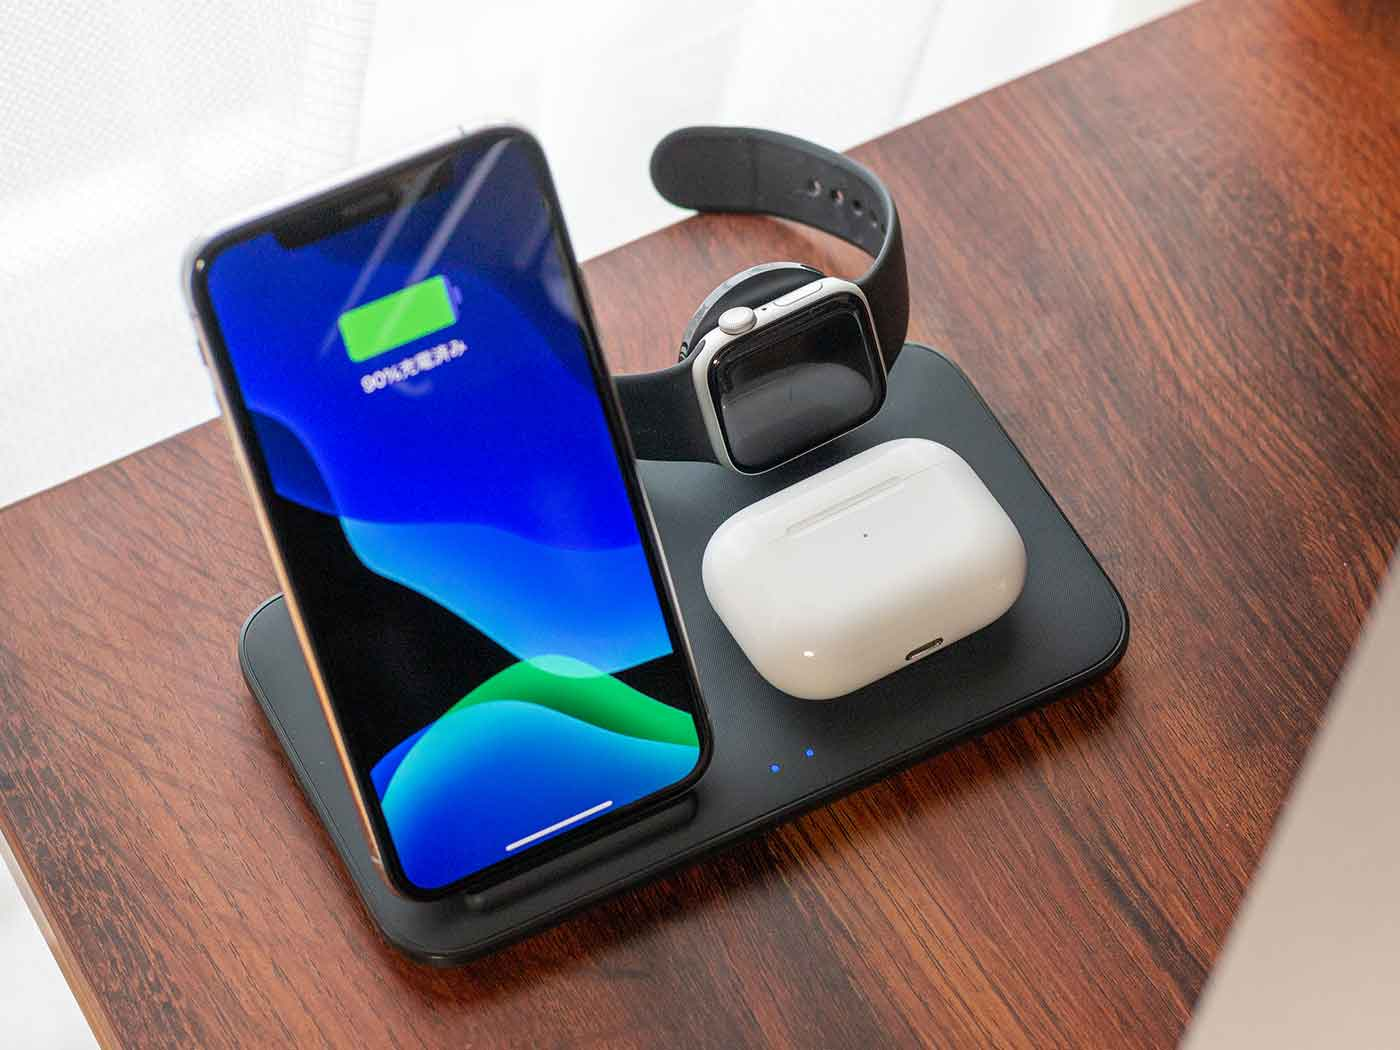 Anker PowerWave+ 3 in 1 stand with Watch Holder